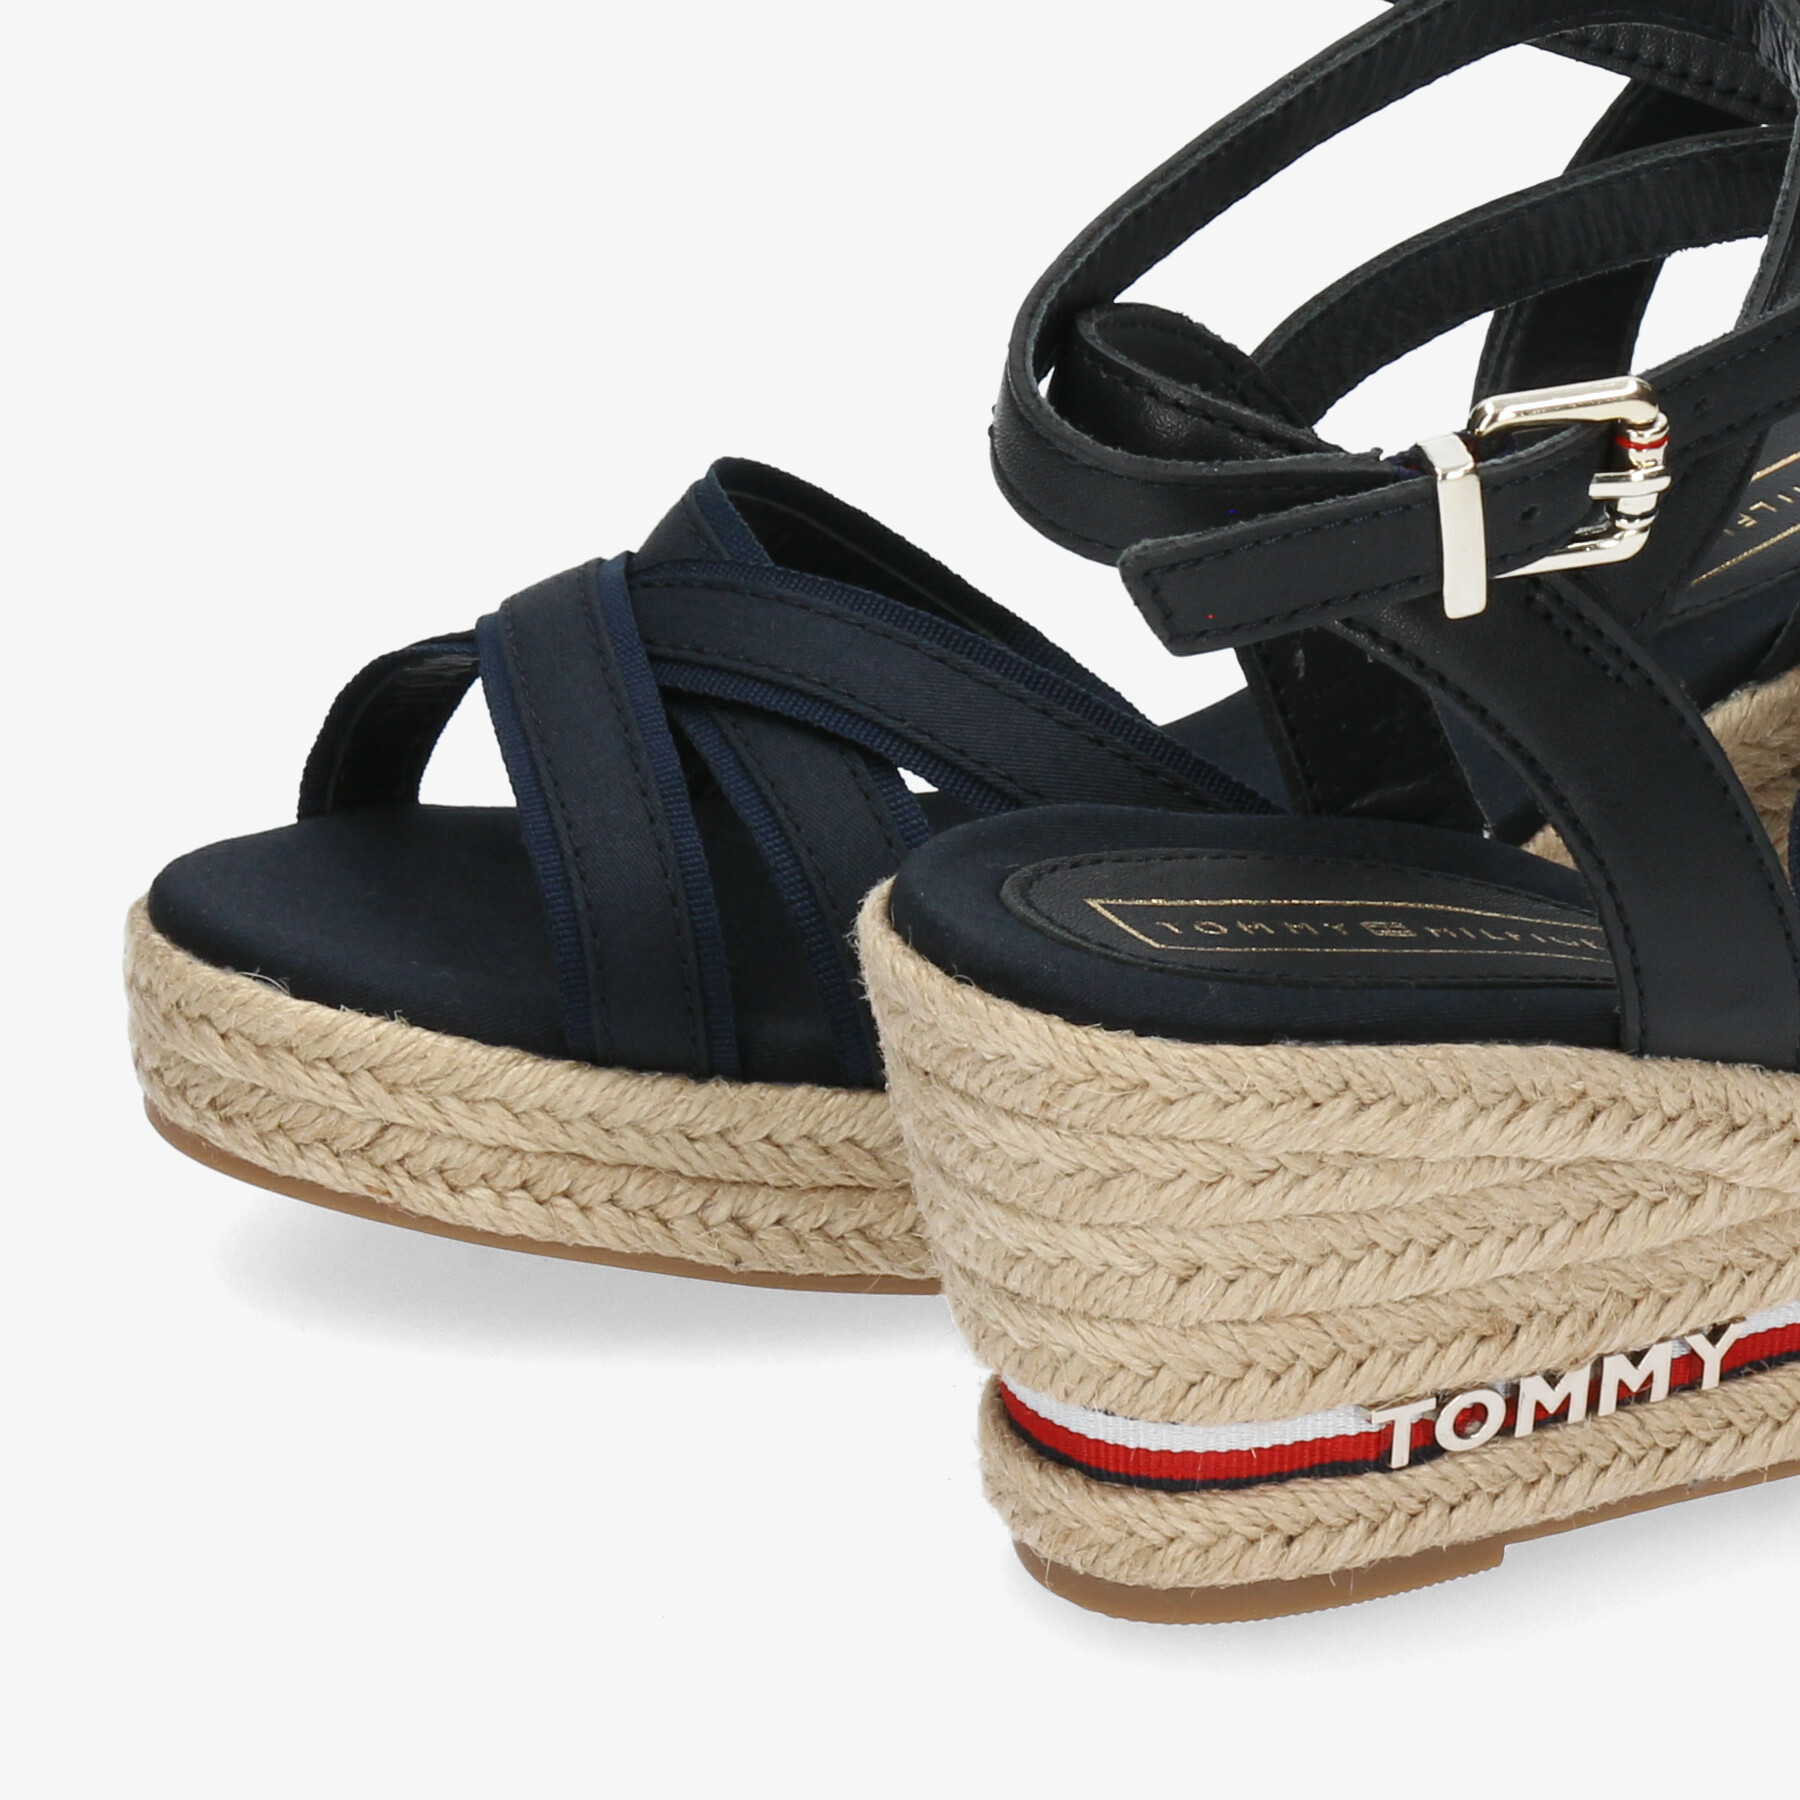 4738334e4 Espadrilles Tommy Hilfiger ICONIC ELBA CORPORATE RIBBON